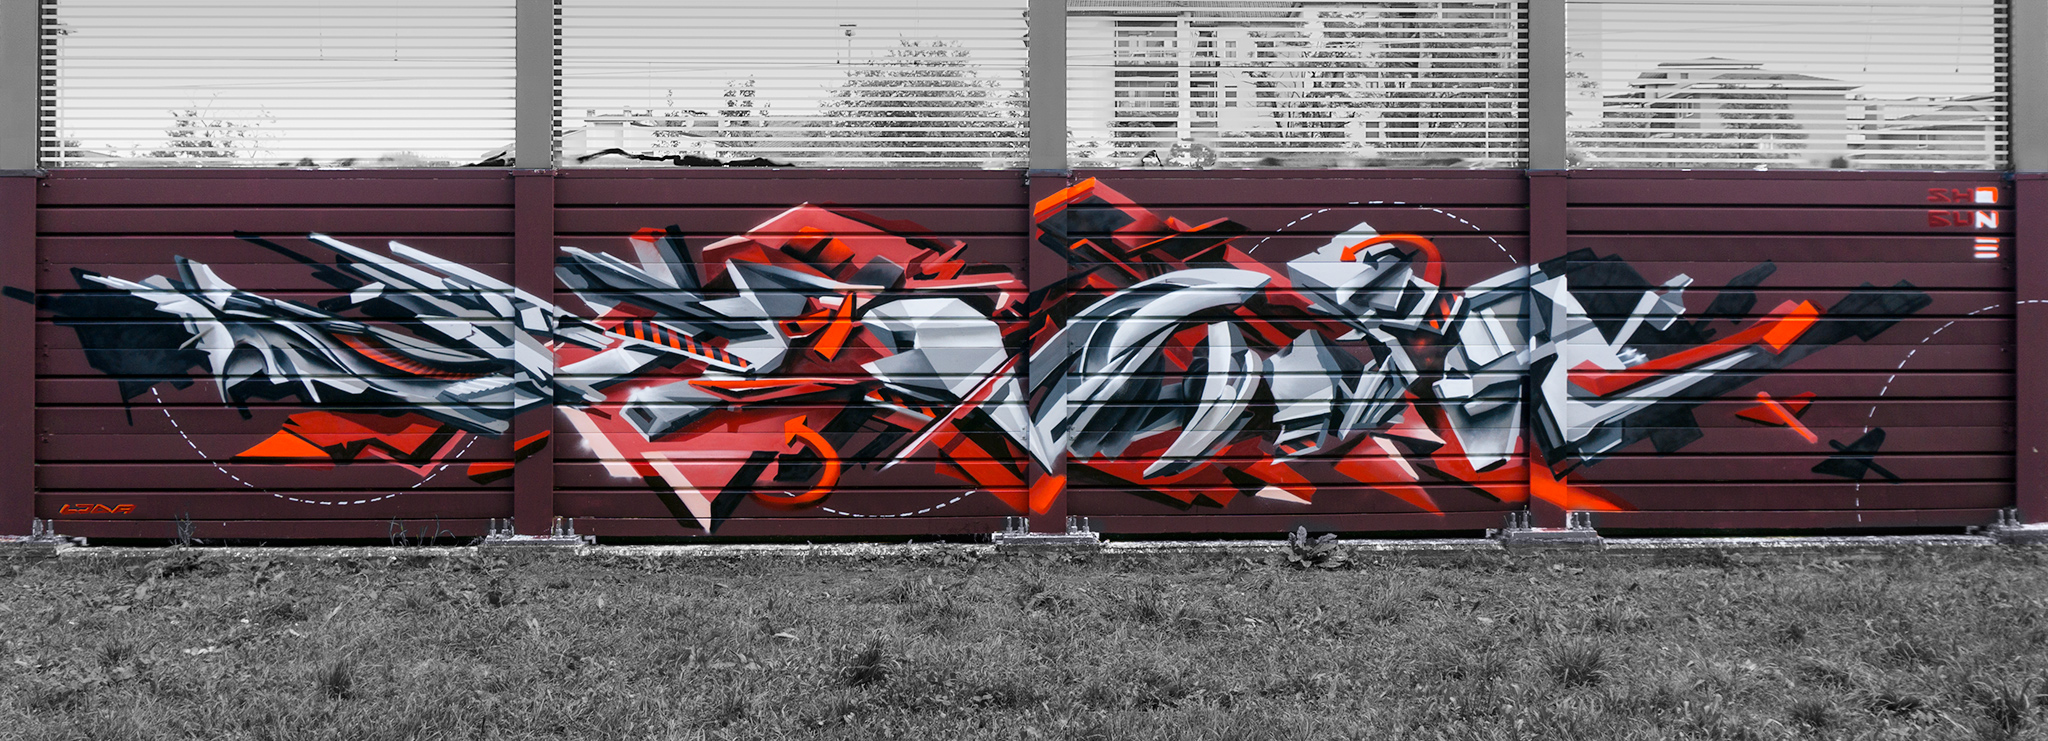 shogun_graffiti_meetingofstyles_mailand_2016_1